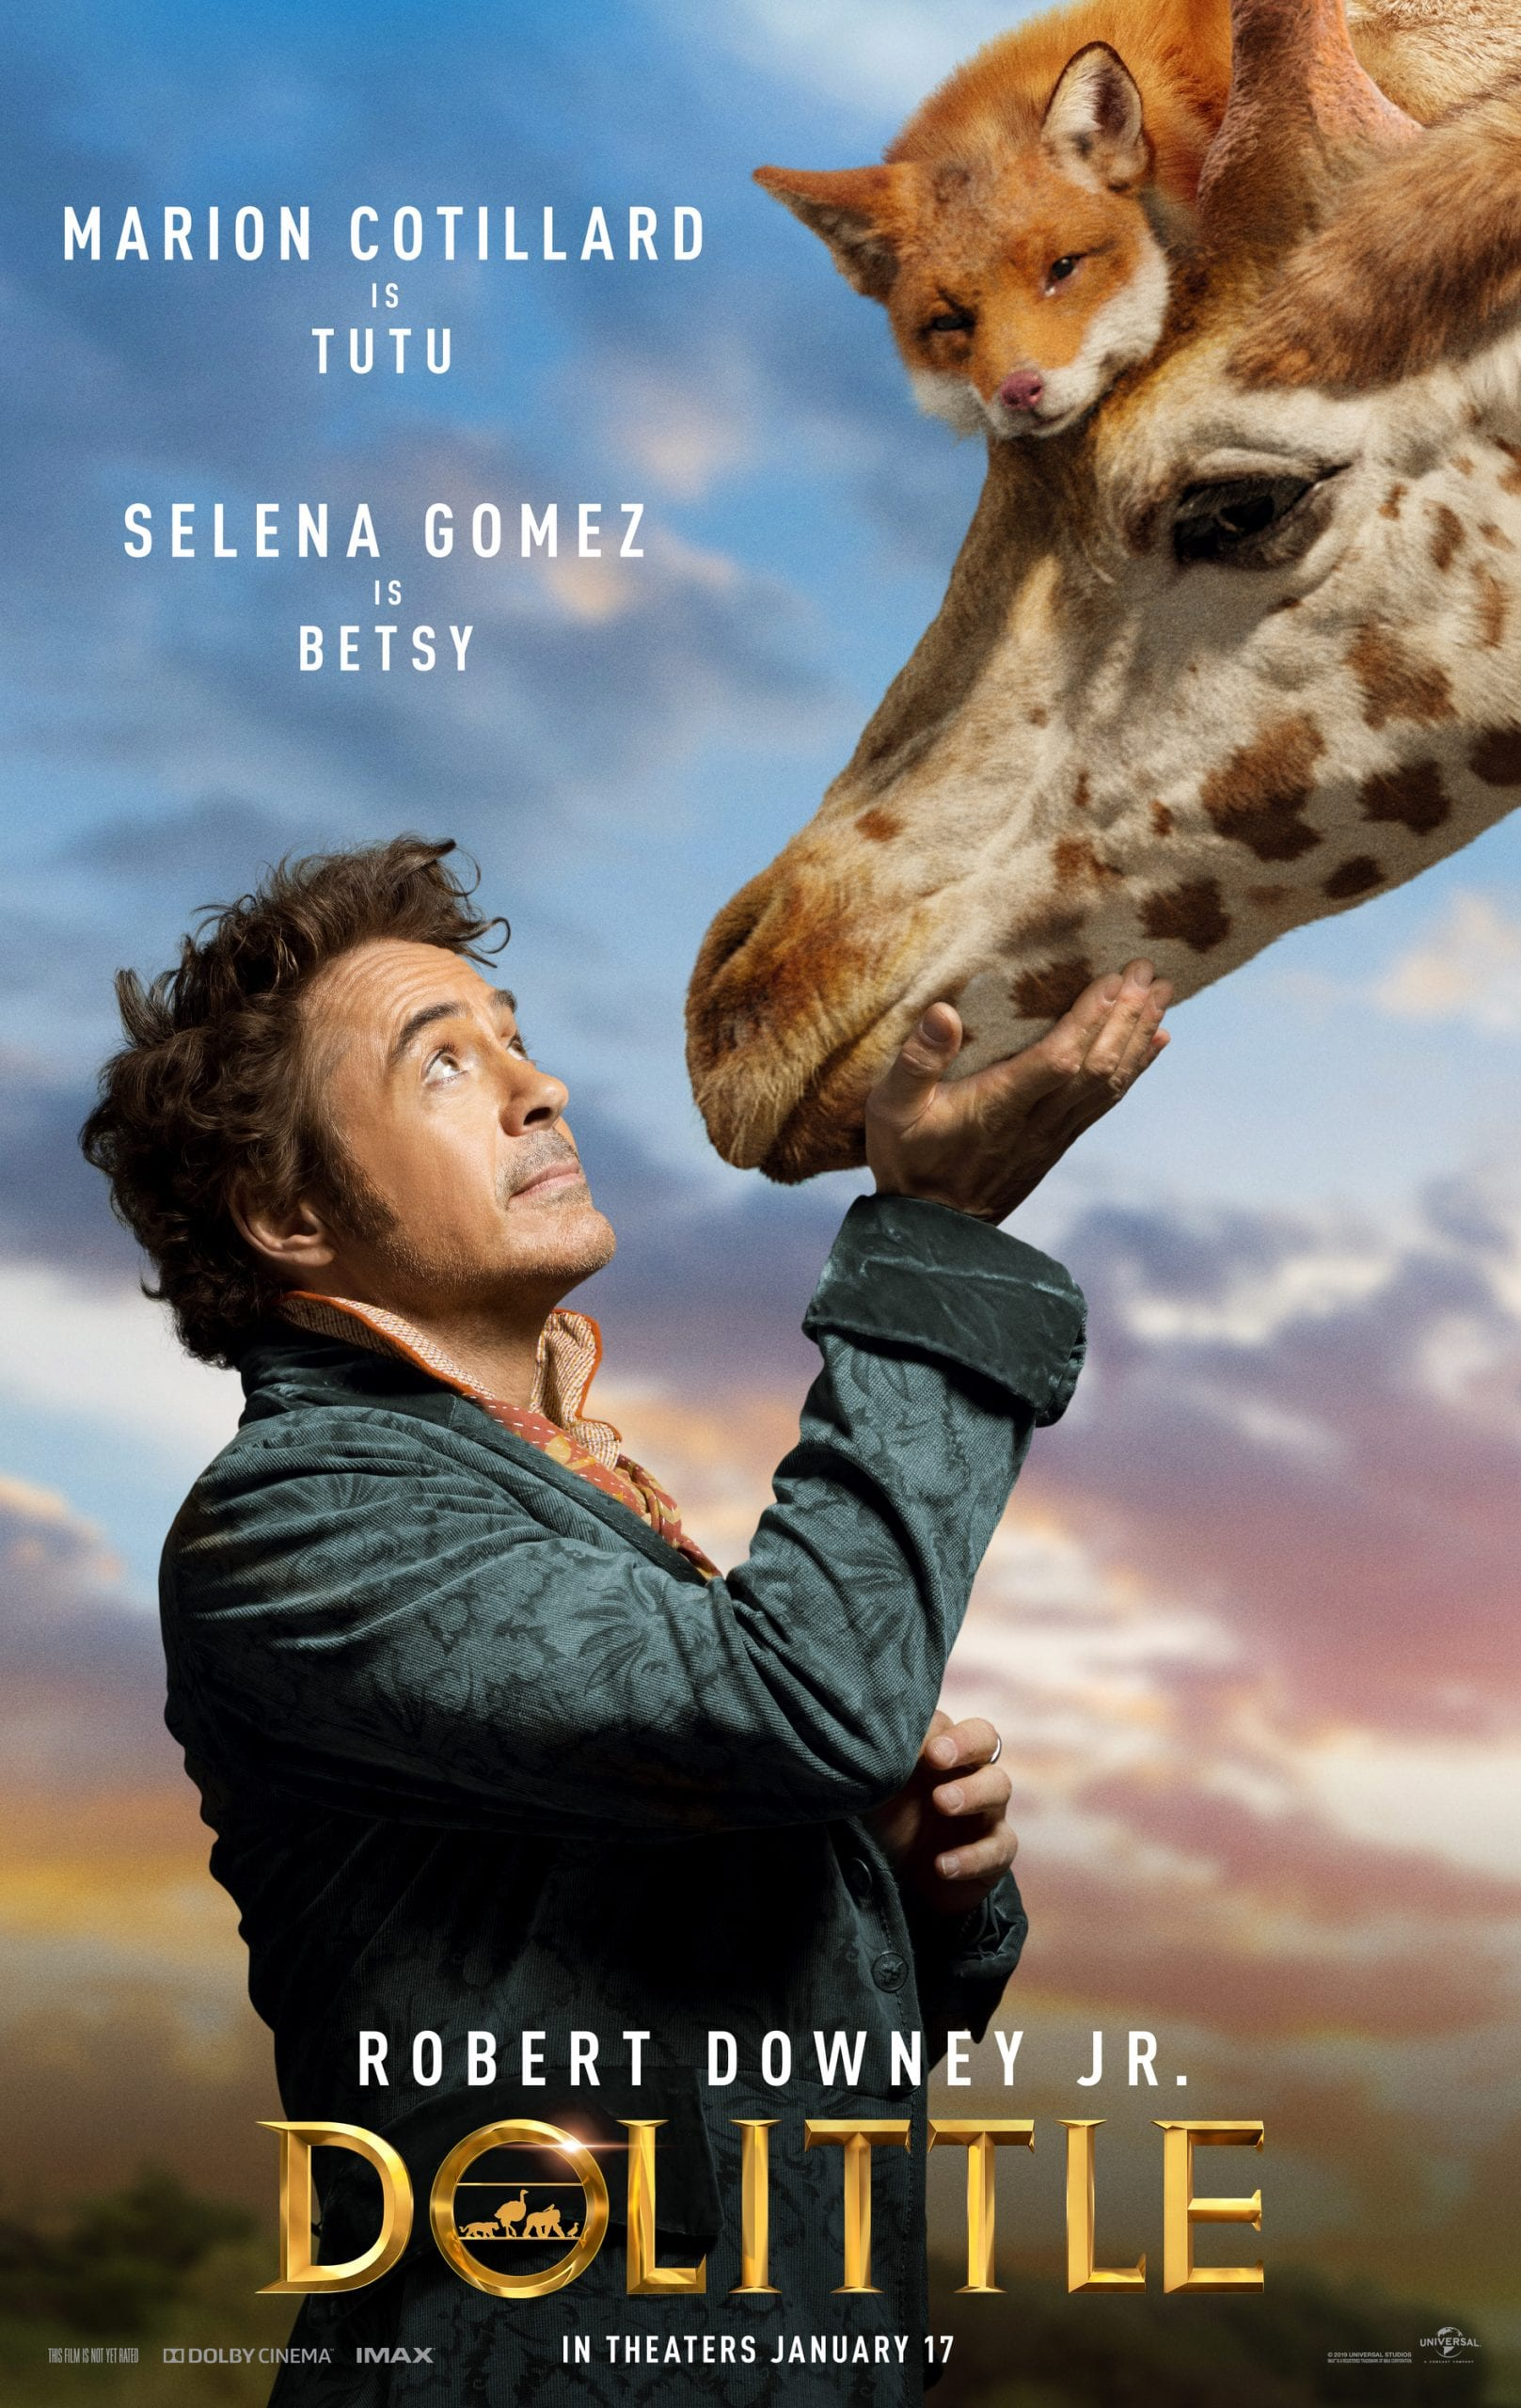 Dolittle Character Posters Marion Cotillard is Tutu and Selena Gomez is Betsy